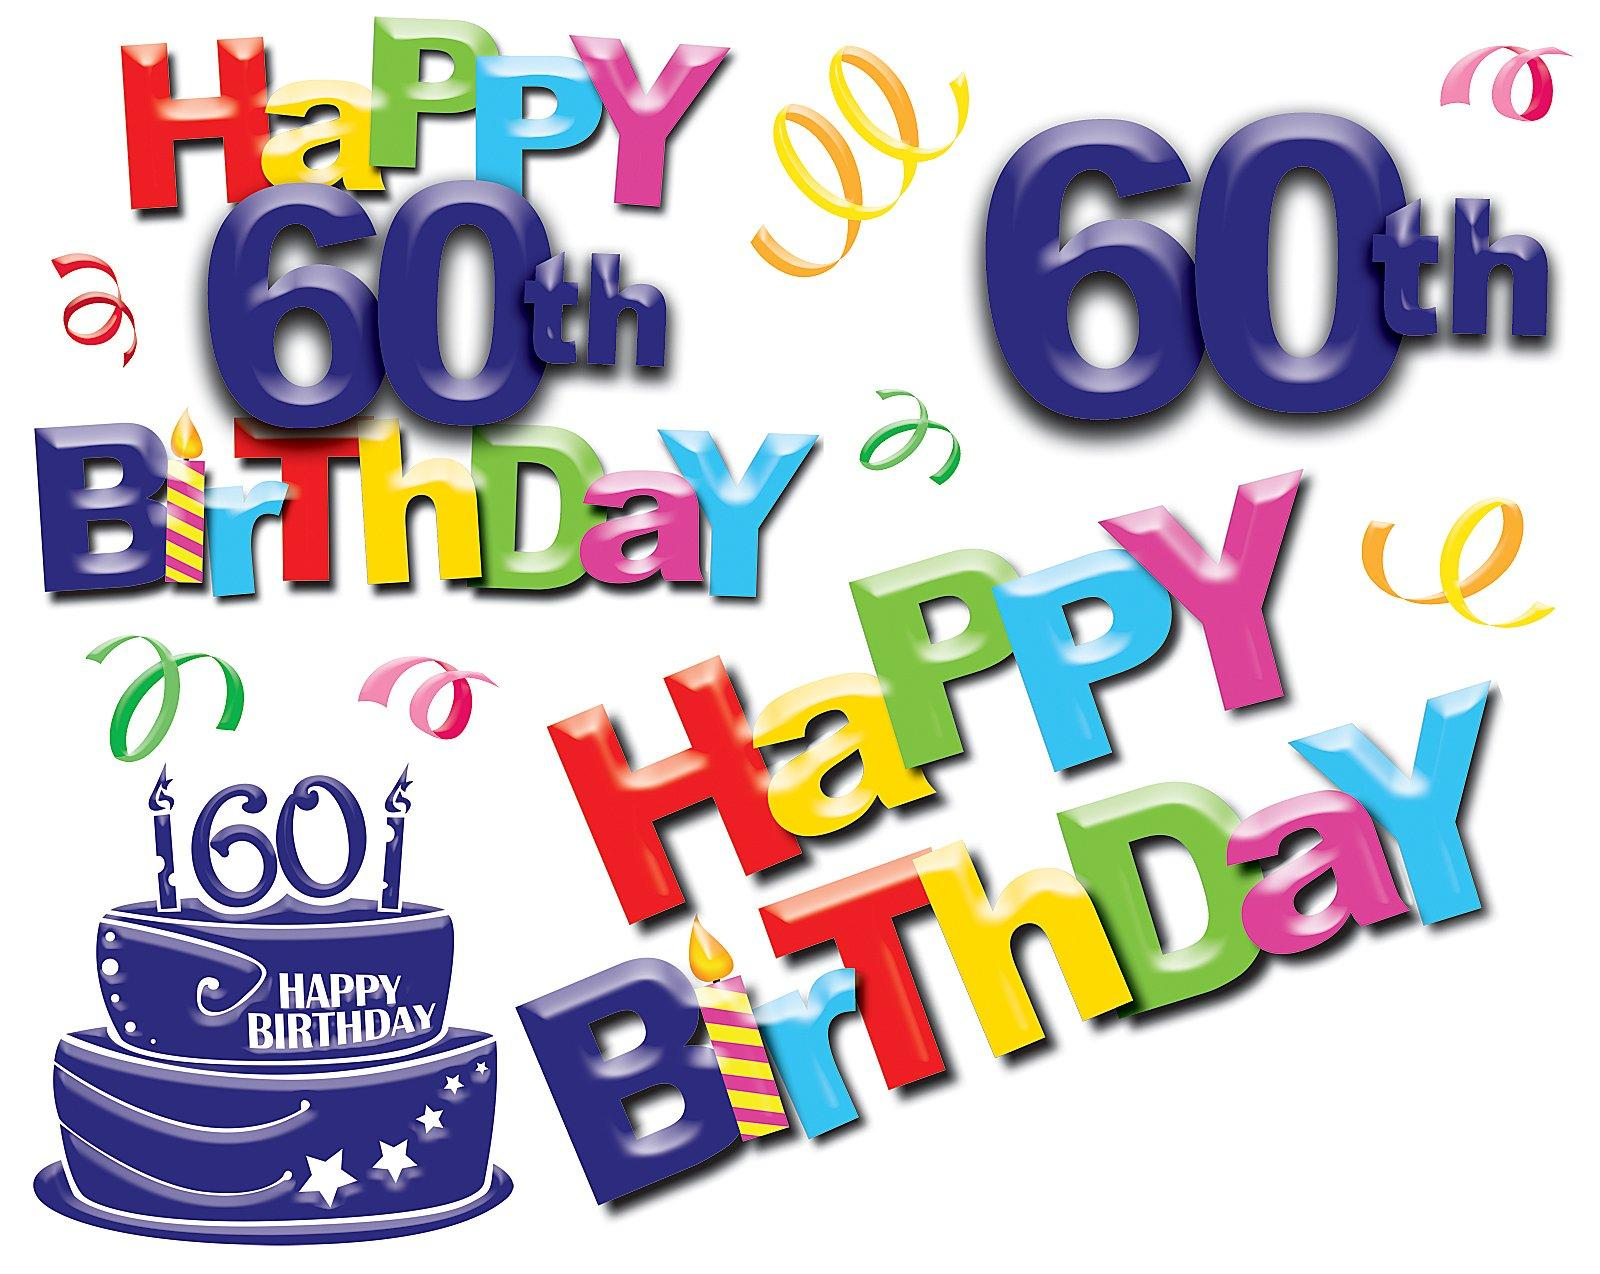 60Th Birthday PNG HD Transparent 60Th Birthday HD.PNG Images..